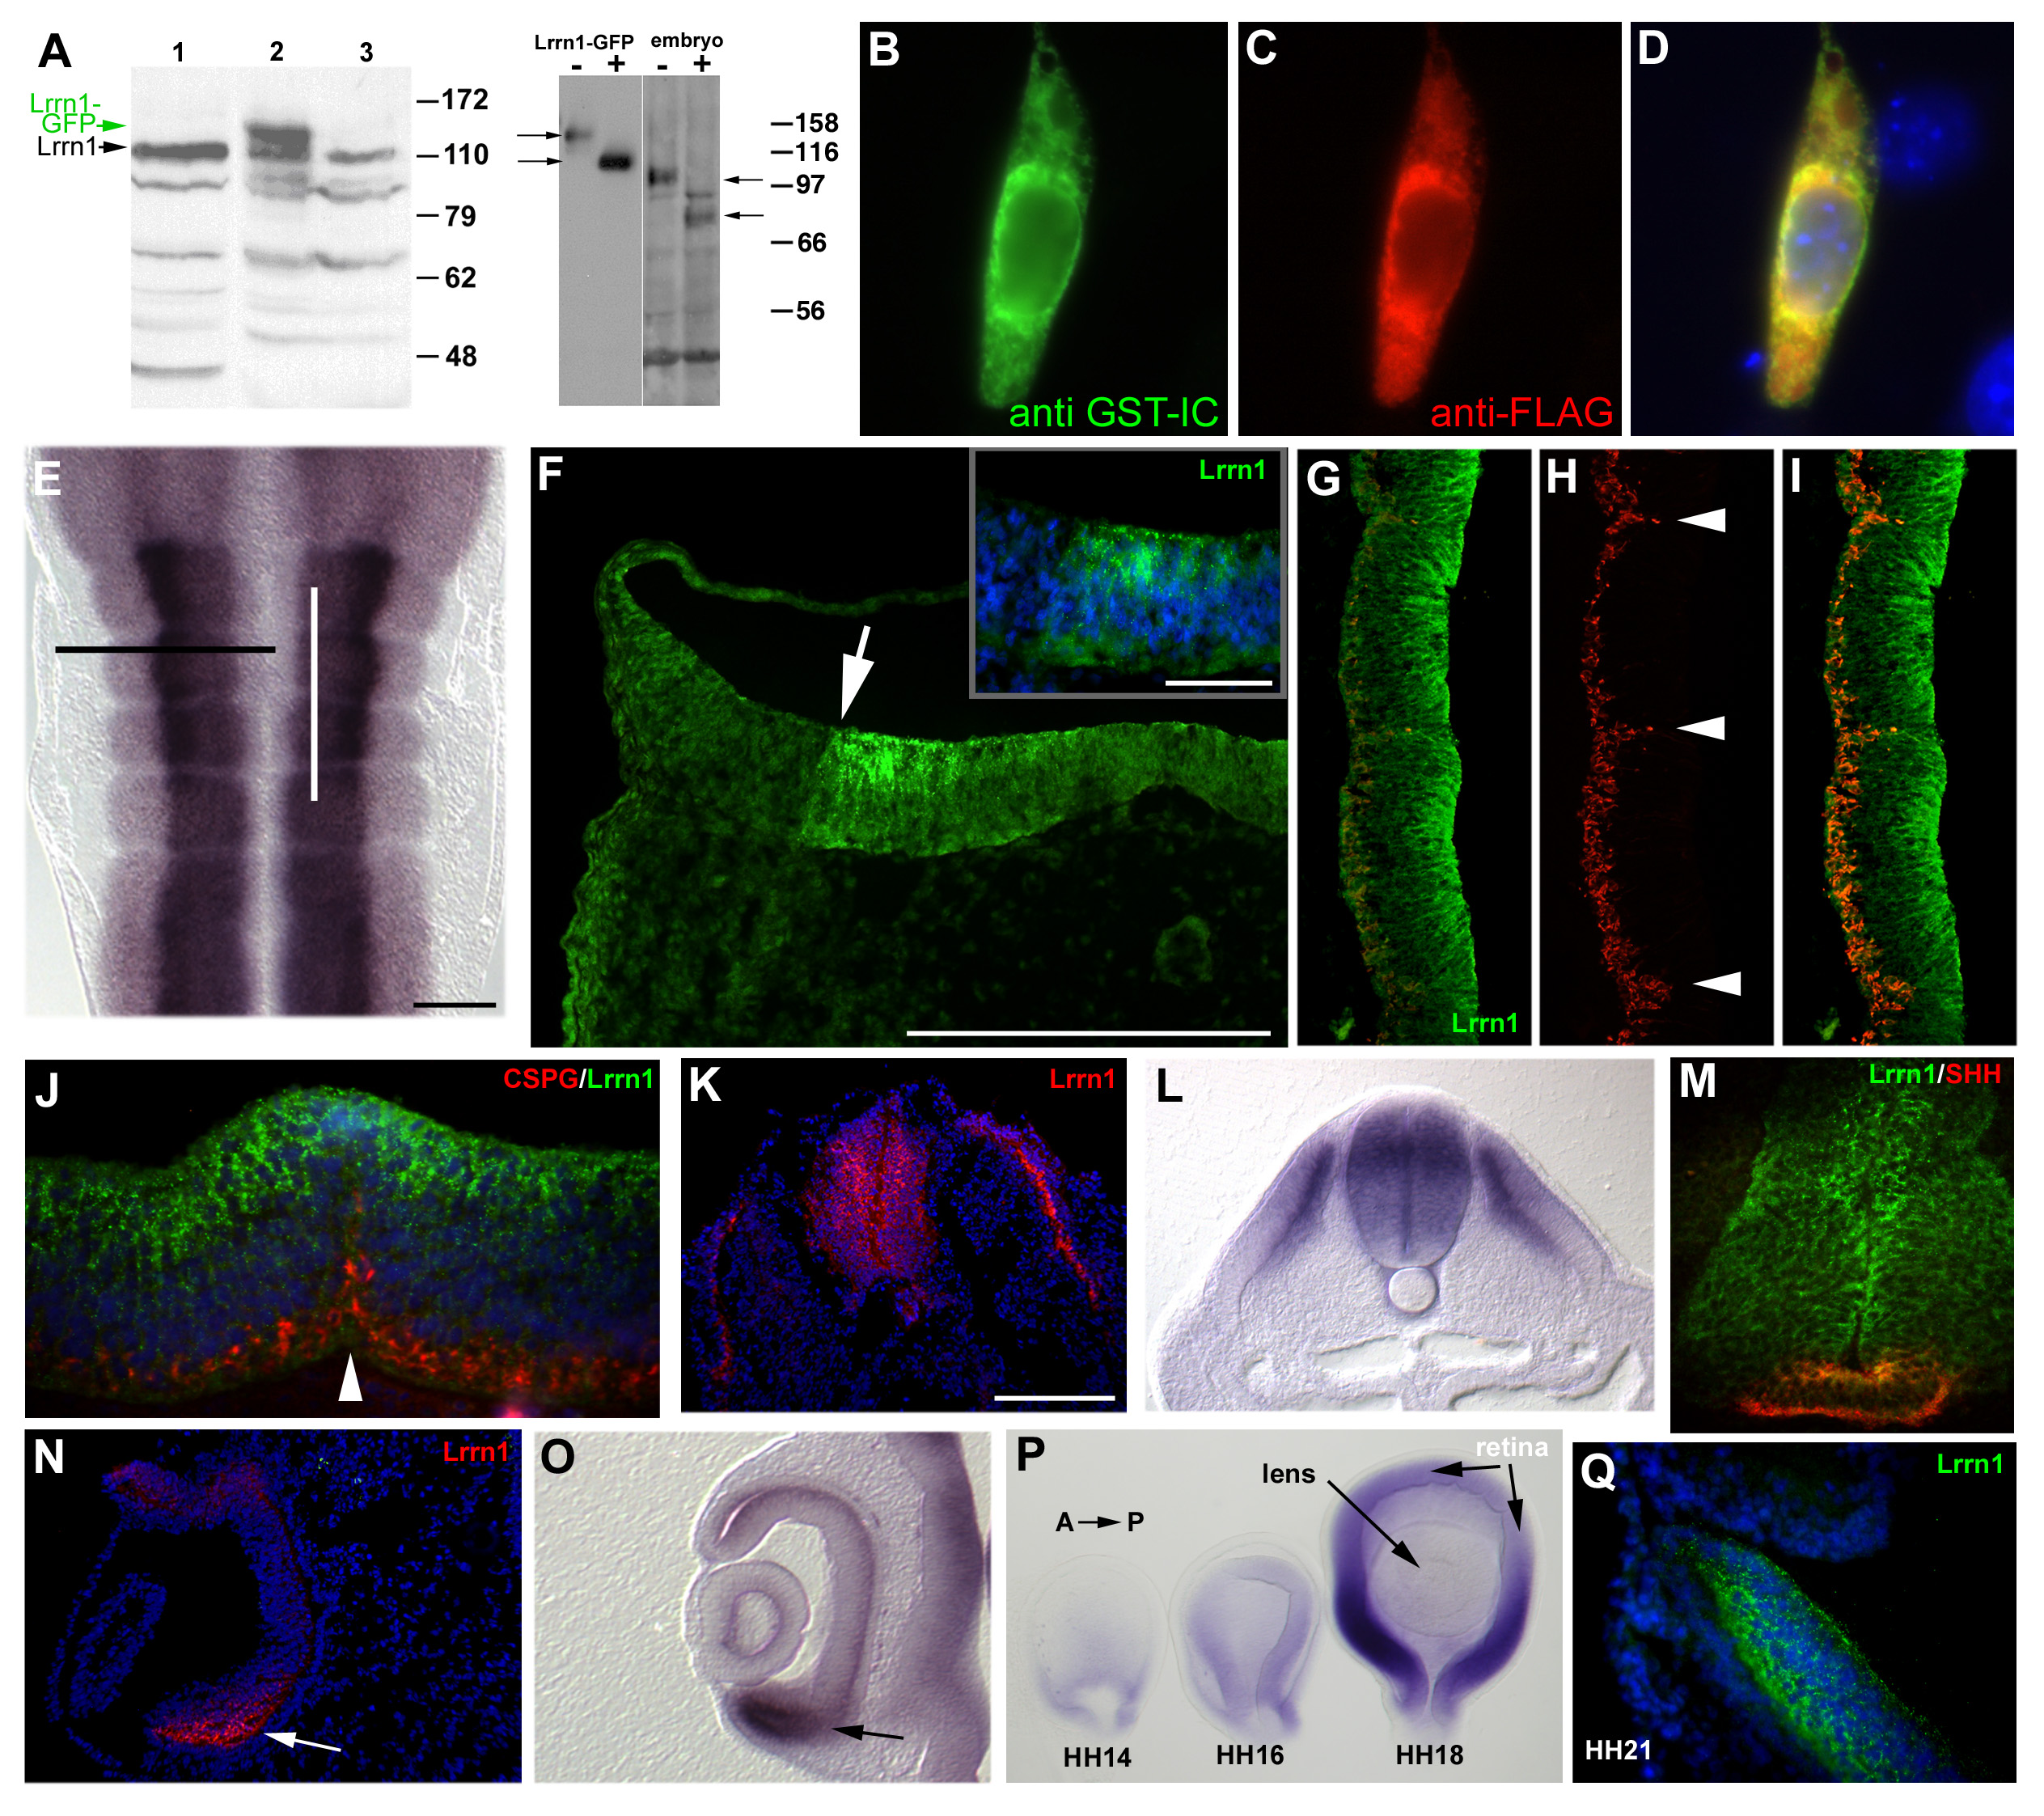 an analysis of capricious Functional dissection of drosophila capricious: functional analysis of the intracellular domain of target recognition molecule the capricious.